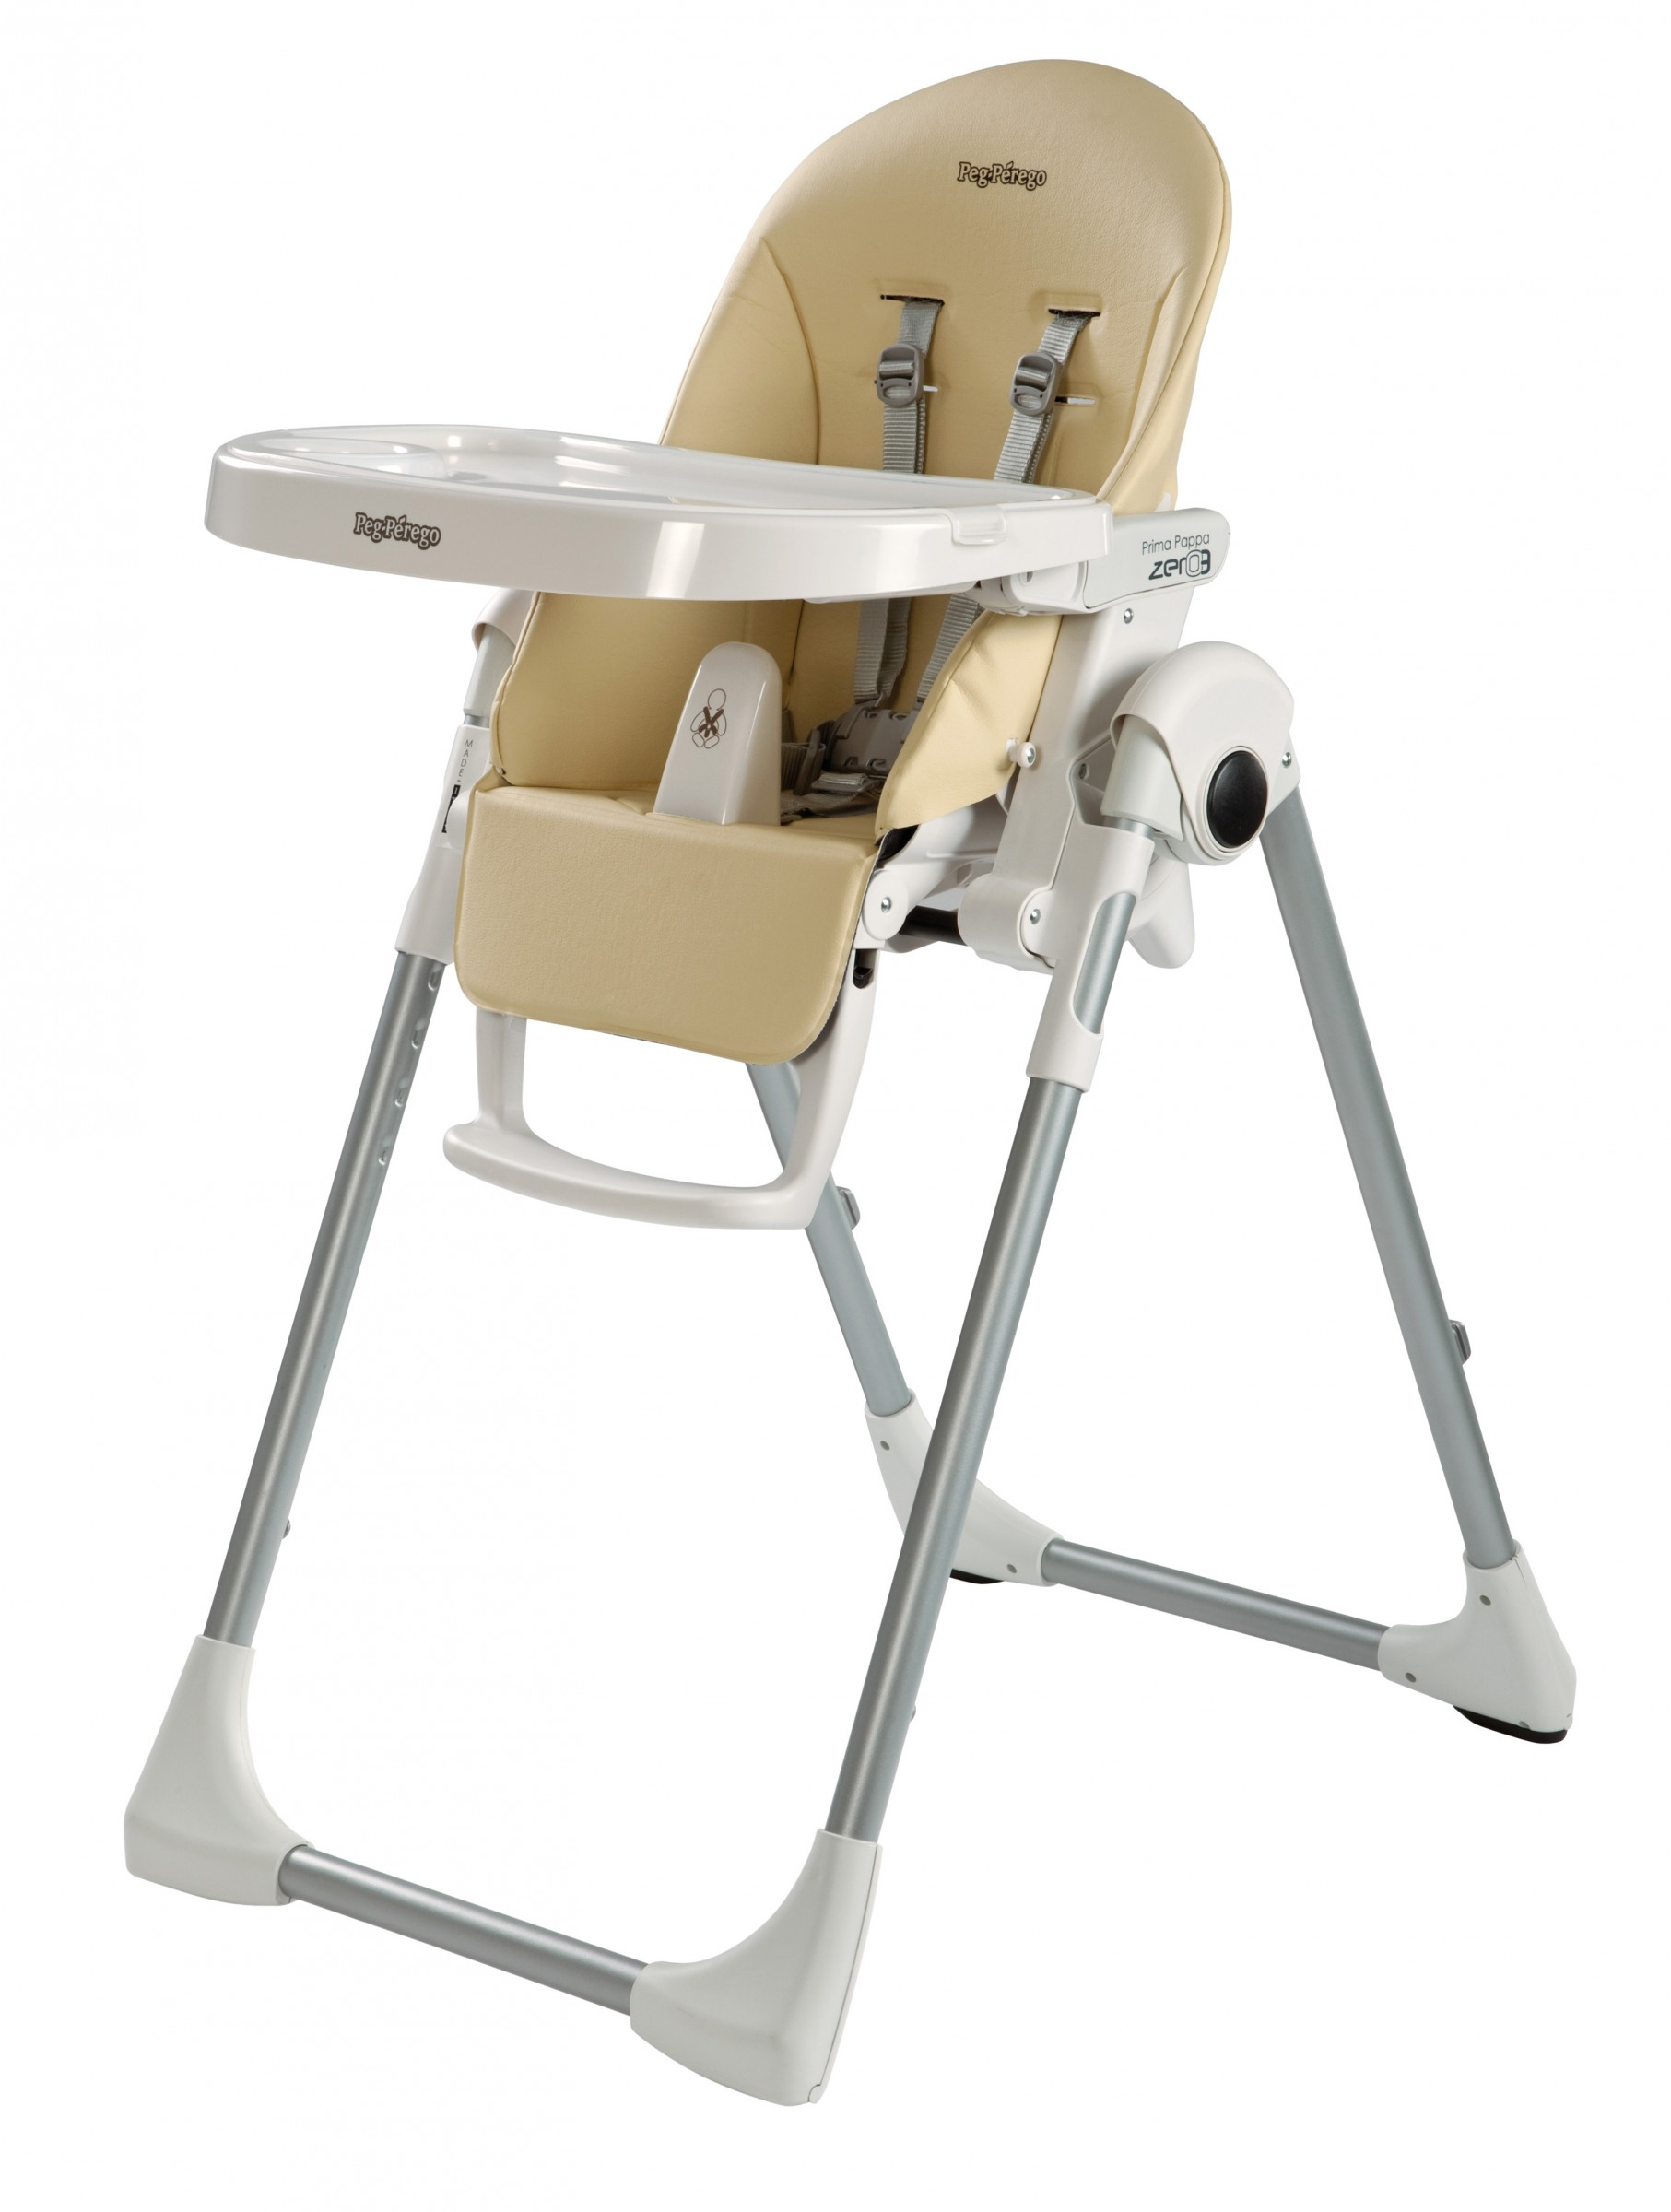 Peg perego high chair prima pappa zero3 paloma high chair for Housse de chaise peg perego prima pappa